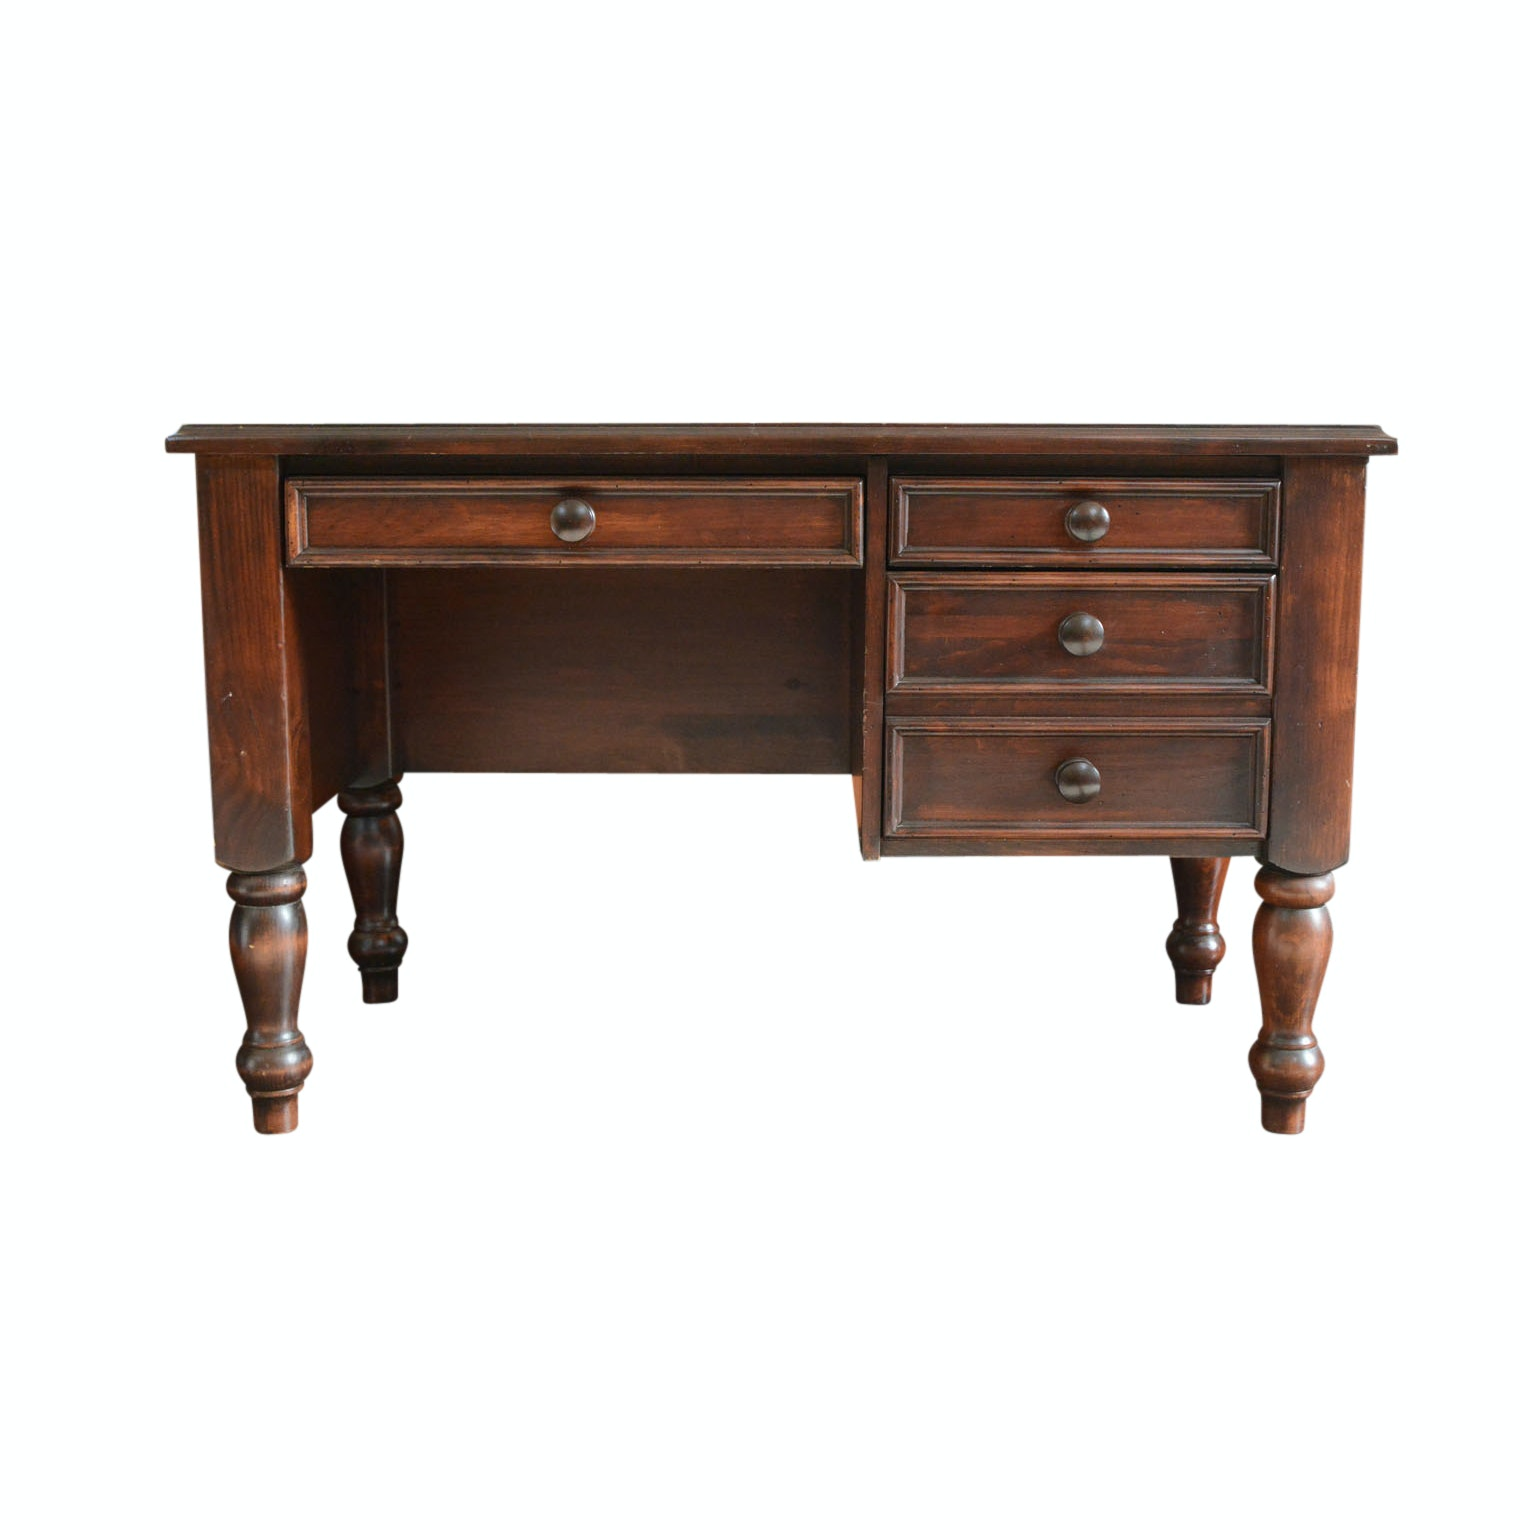 Vintage Early American Style Pine Desk